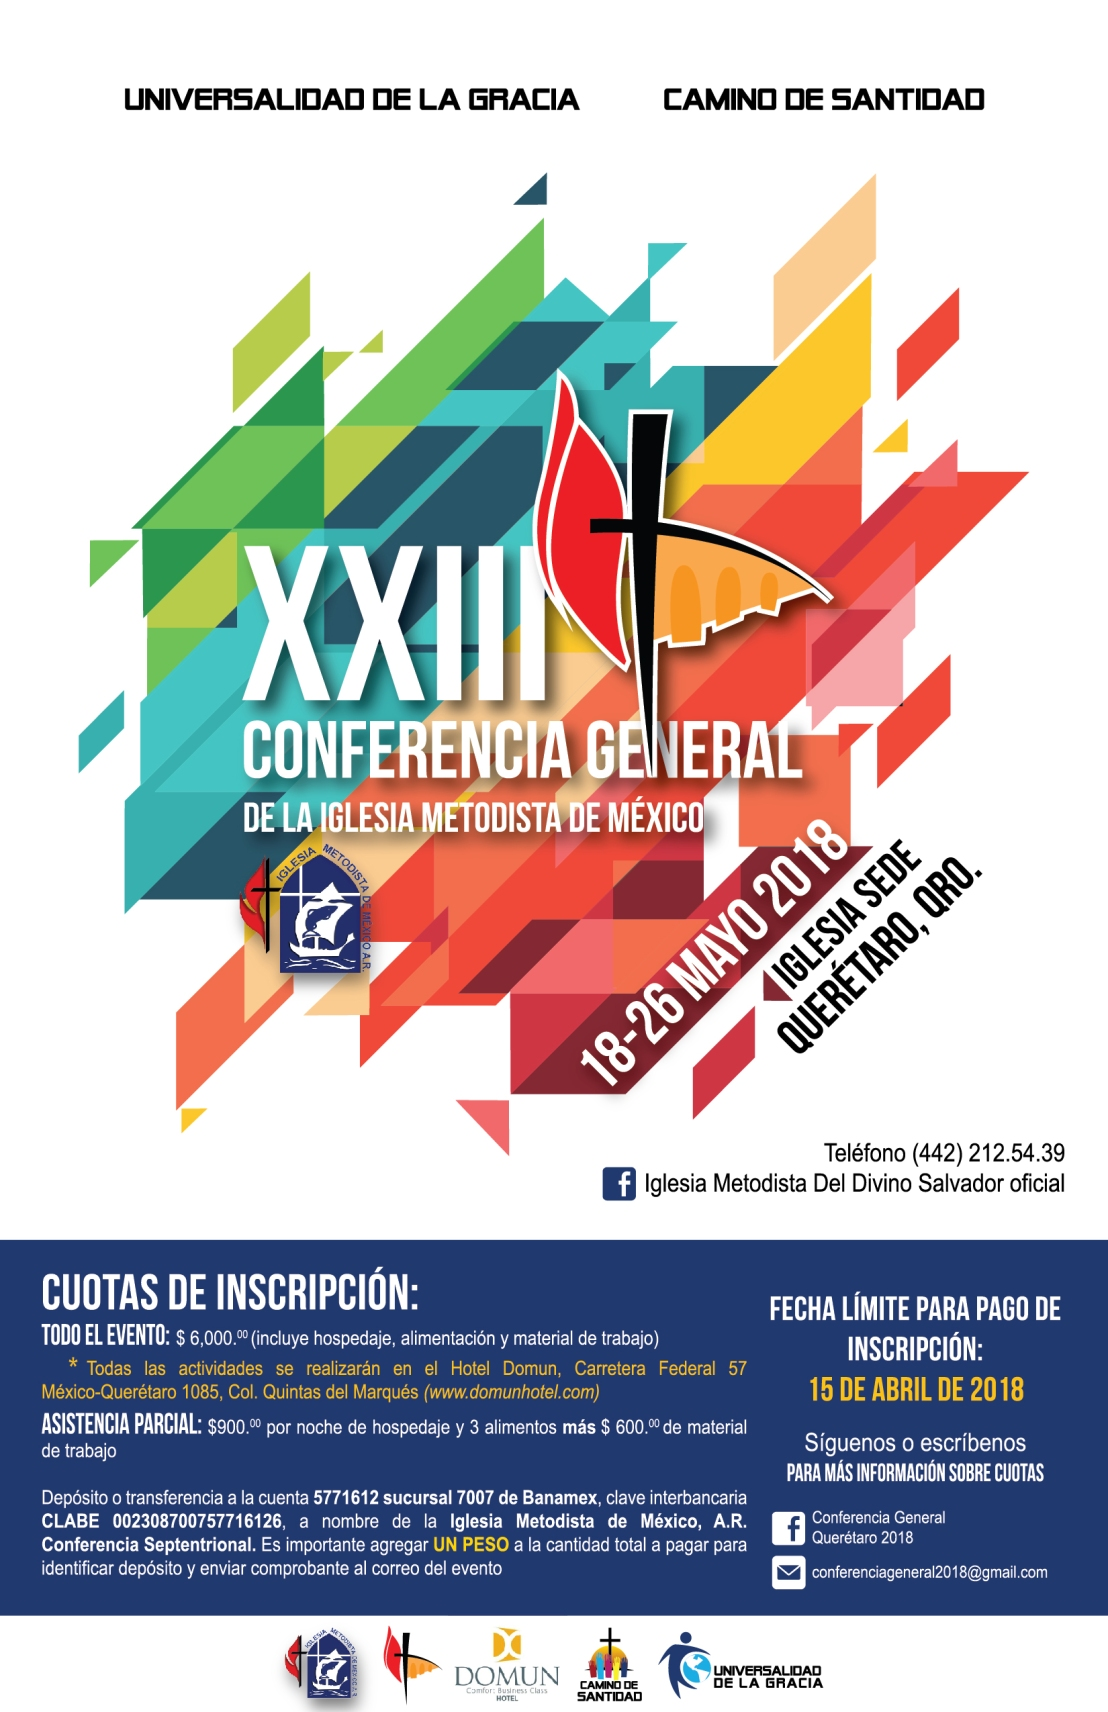 2, a. XXIII Conferencia General de la IMMAR